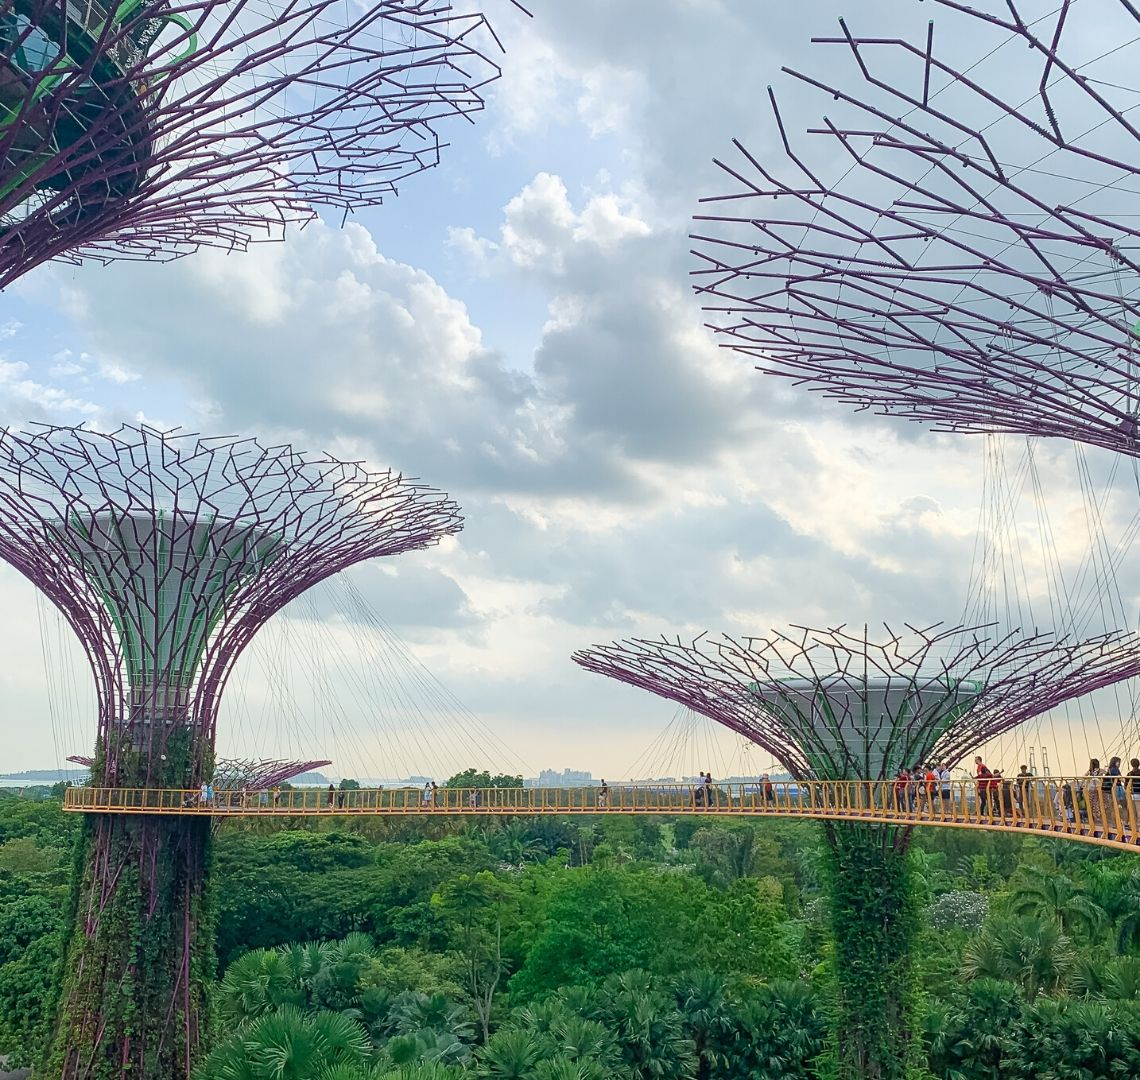 """Gardens By The Bay With Kids - a view of one end of the yellow bridge that is the superstrees skywalk, The there are 4 trees in view to varying degrees with their green middles and purple """"branches). There are quite a few people n the bridge. Behind is is a lot of green vegetation and the sky is cloudy"""